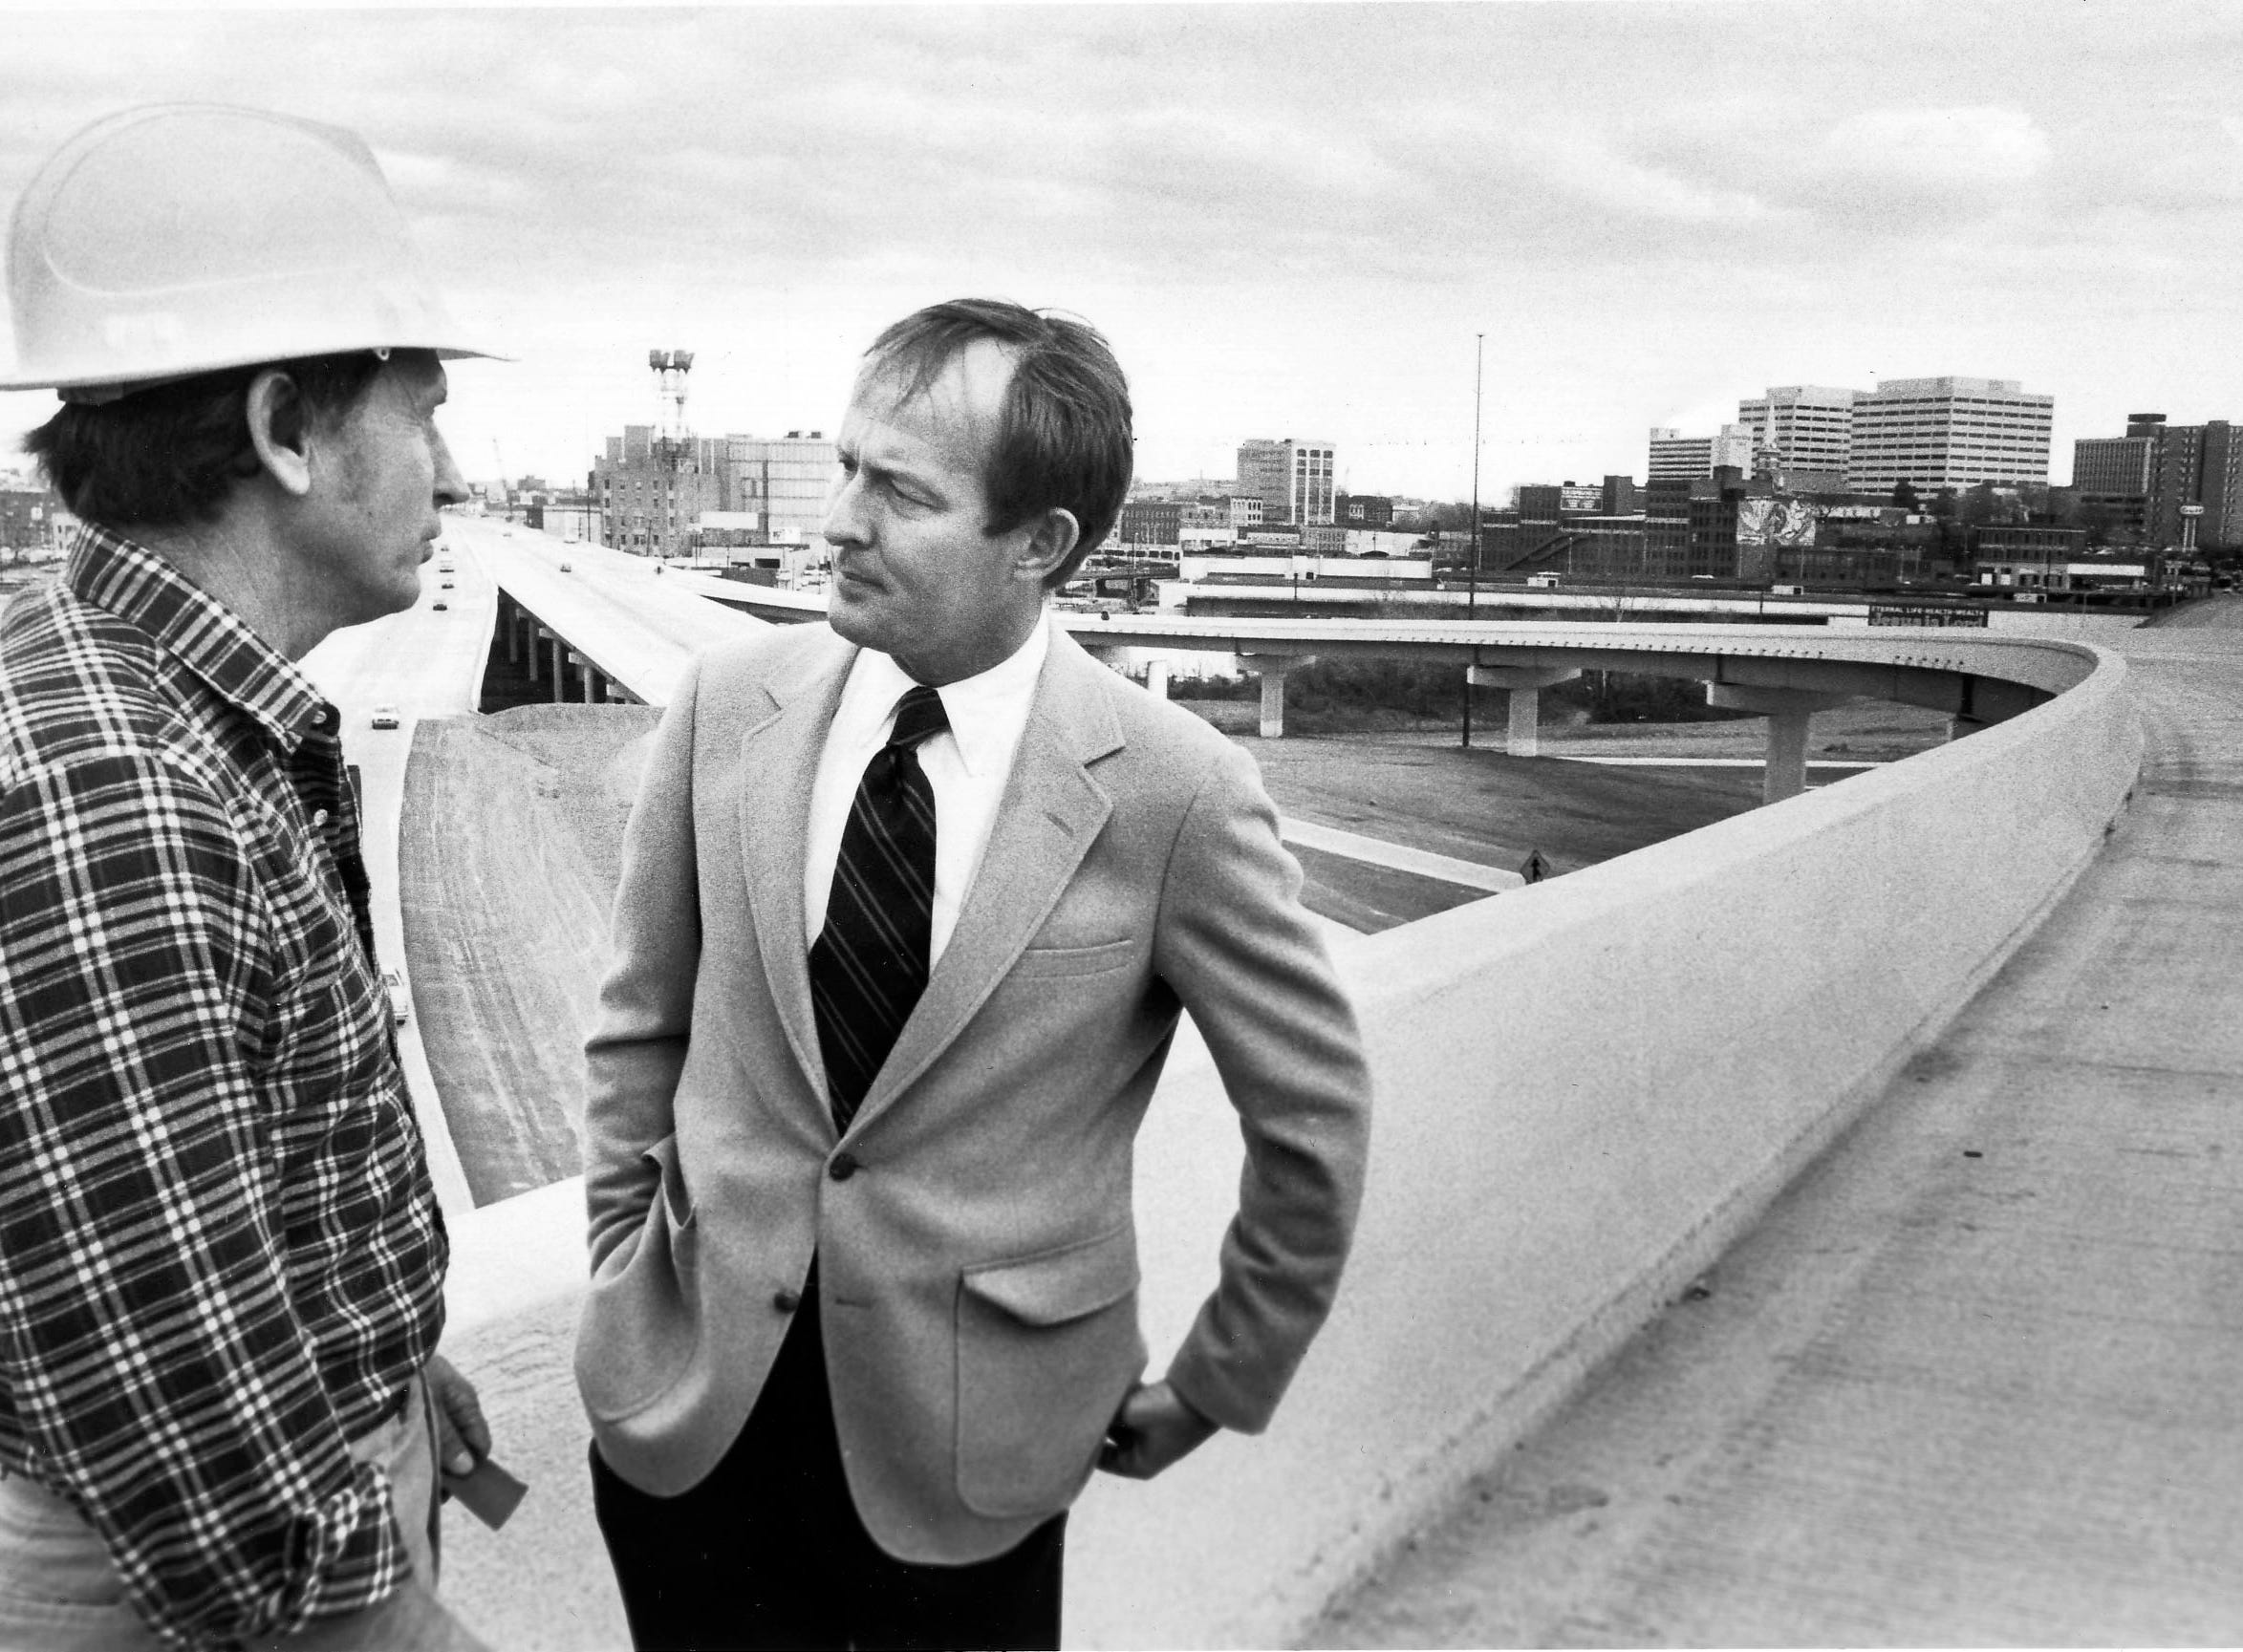 In a March 31, 1982, photograph, Gov. Lamar Alexander, right, talks with William Bell of Dement Construction Company during a ribbon cutting ceremony for the revamped Interstate 40/ 75 intersection known as Malfunction Junction.